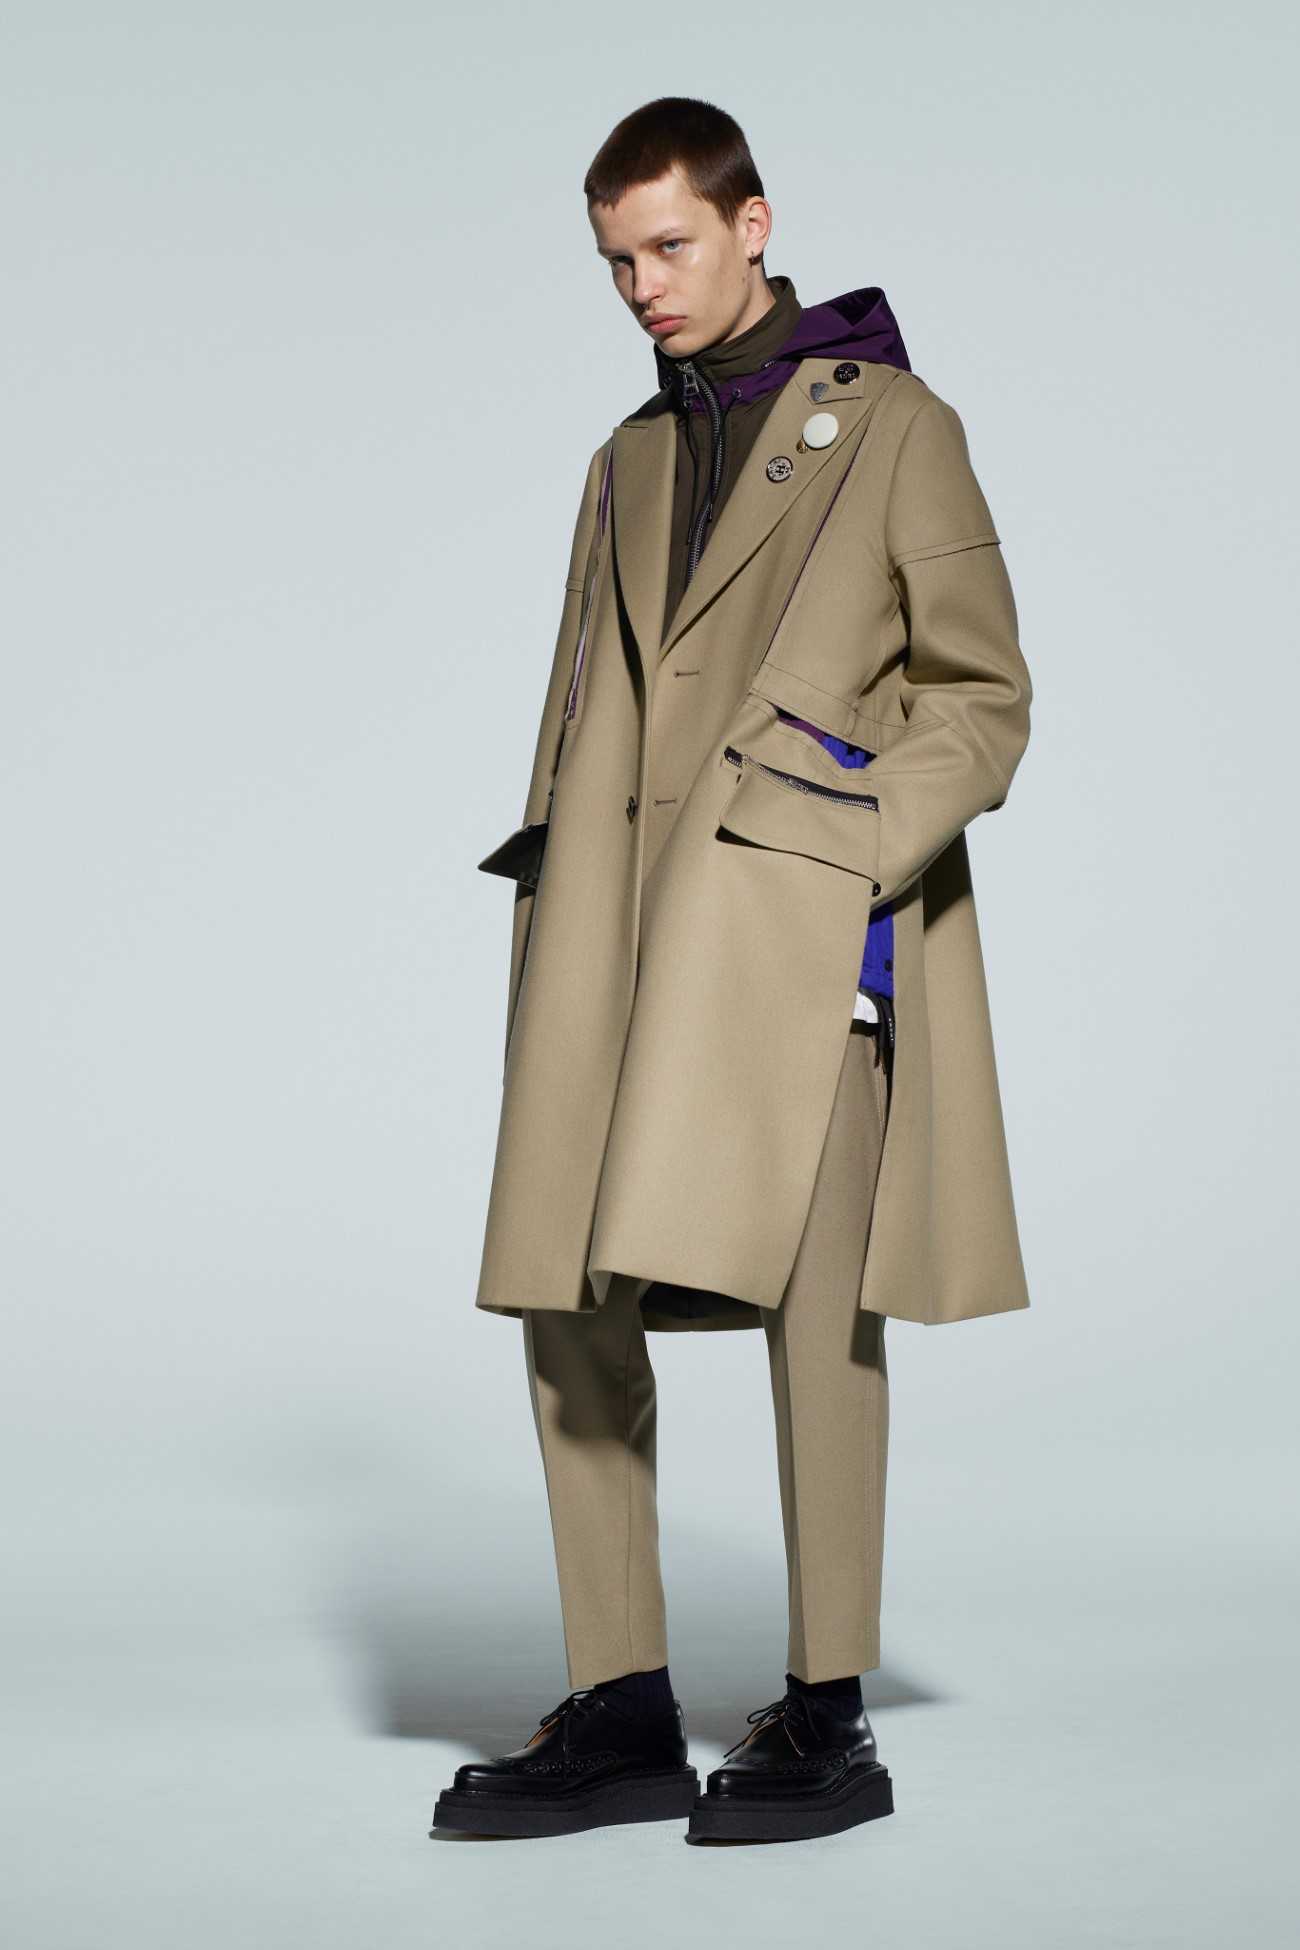 Sacai Men's Fall Winter 2021 - Tokyo Fashion Week